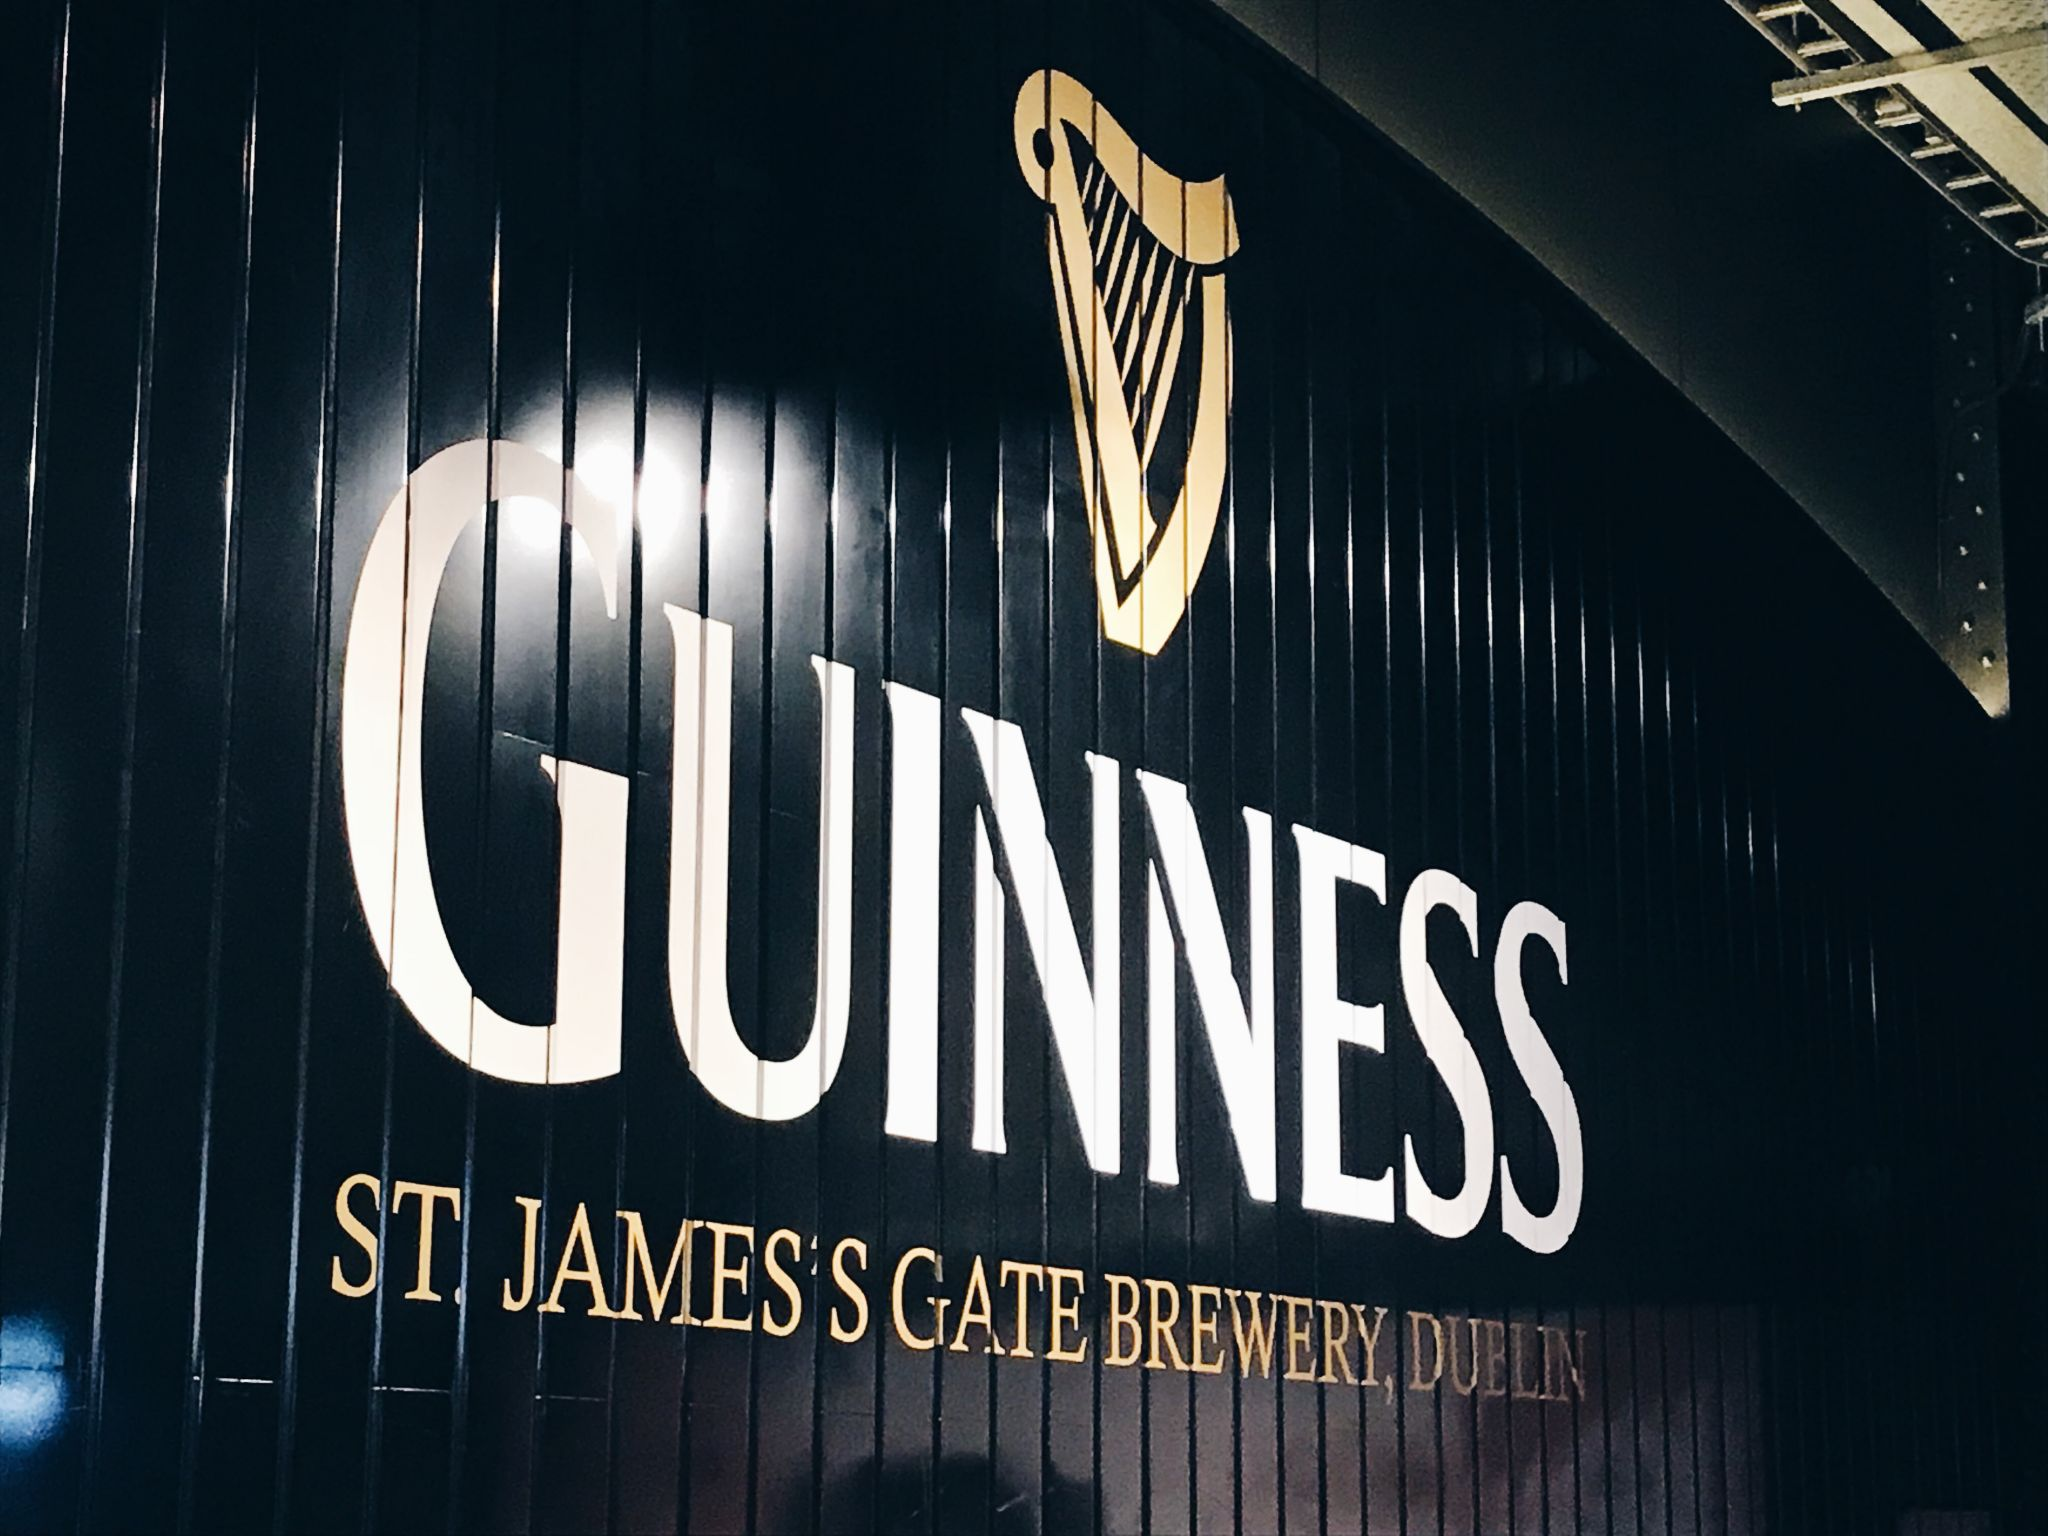 Must see places in Ireland - Guinness Storehouse